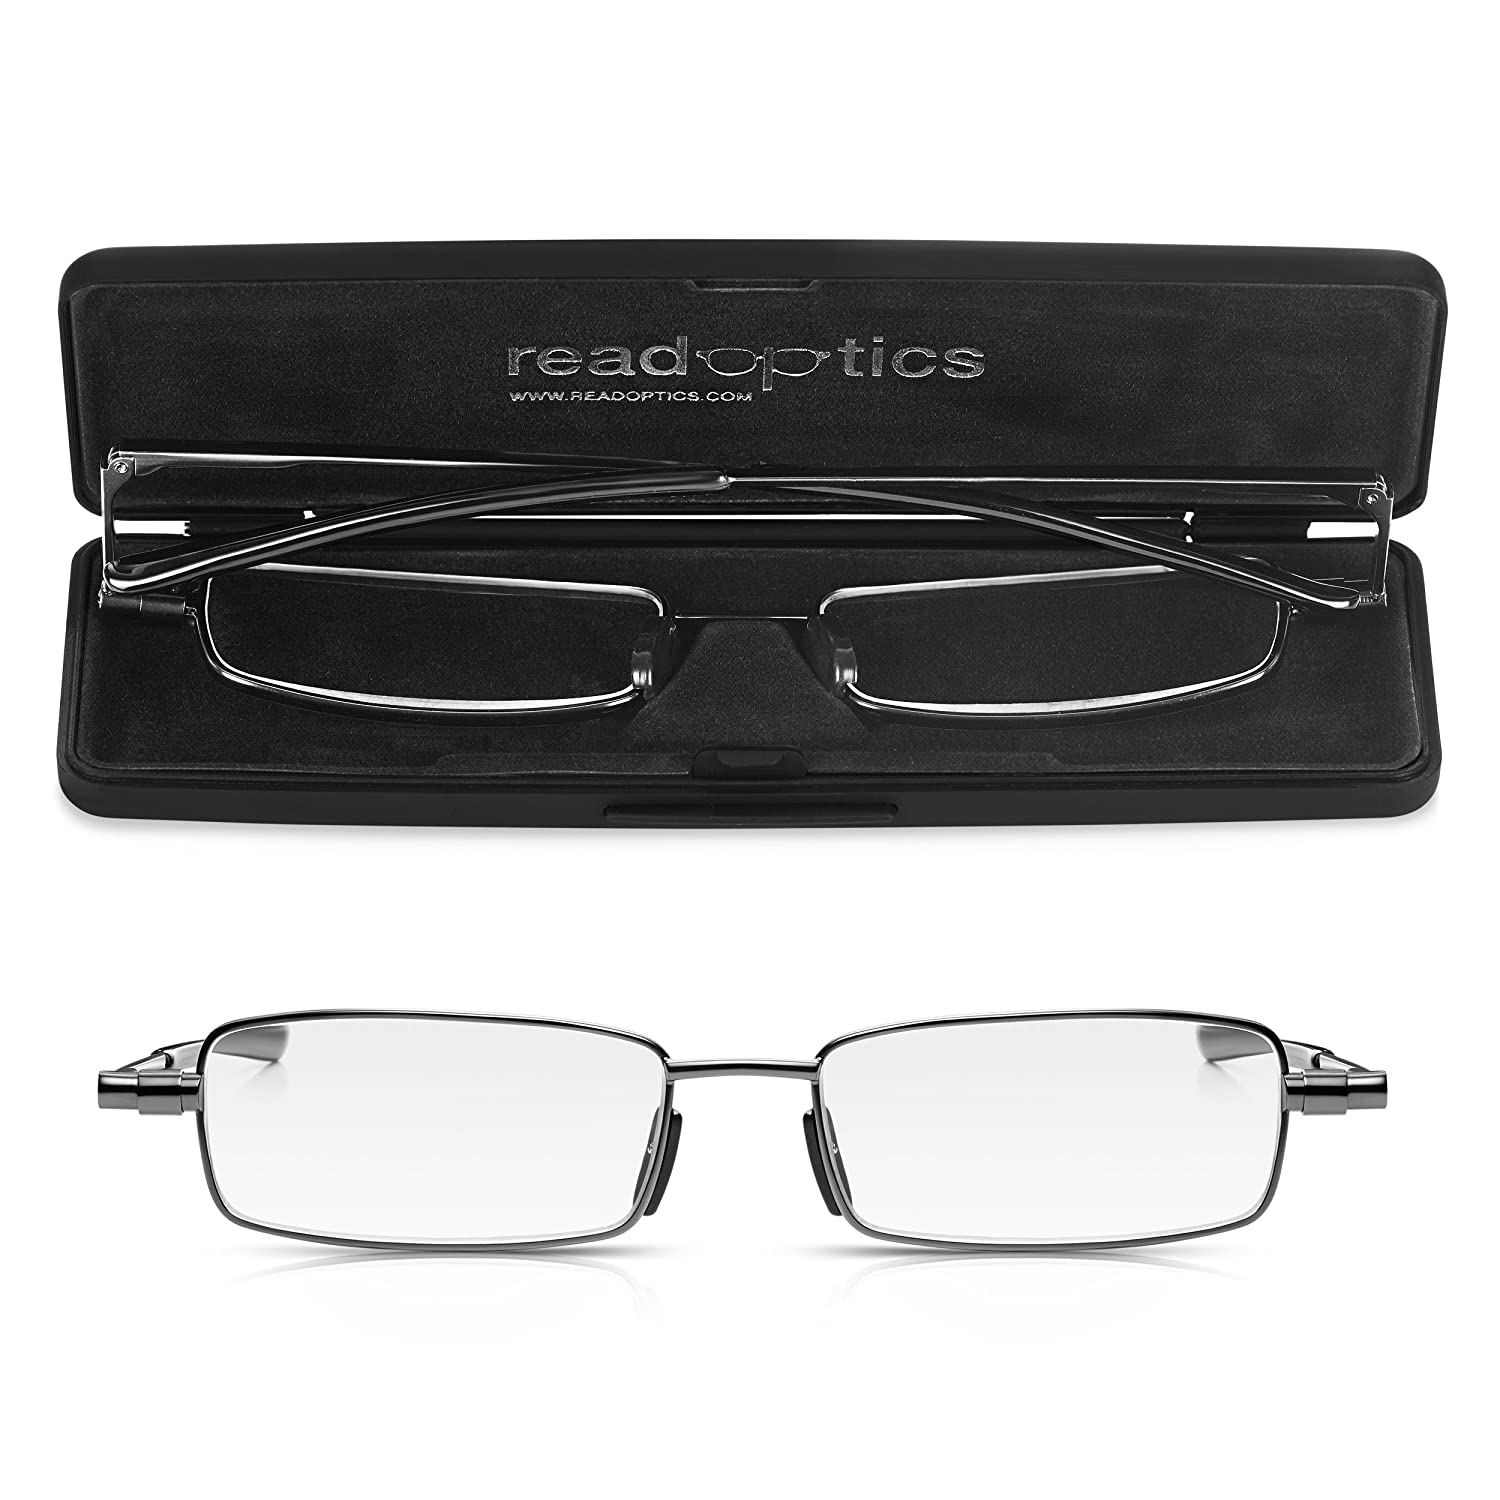 b35fad51bbcb5 Read Optics Foldable Reading Glasses Fold Up Flat in Thin Travel Case   +2.00 Mens Ladies Patented Ultra Slim Folding Ready Readers Spectacles.